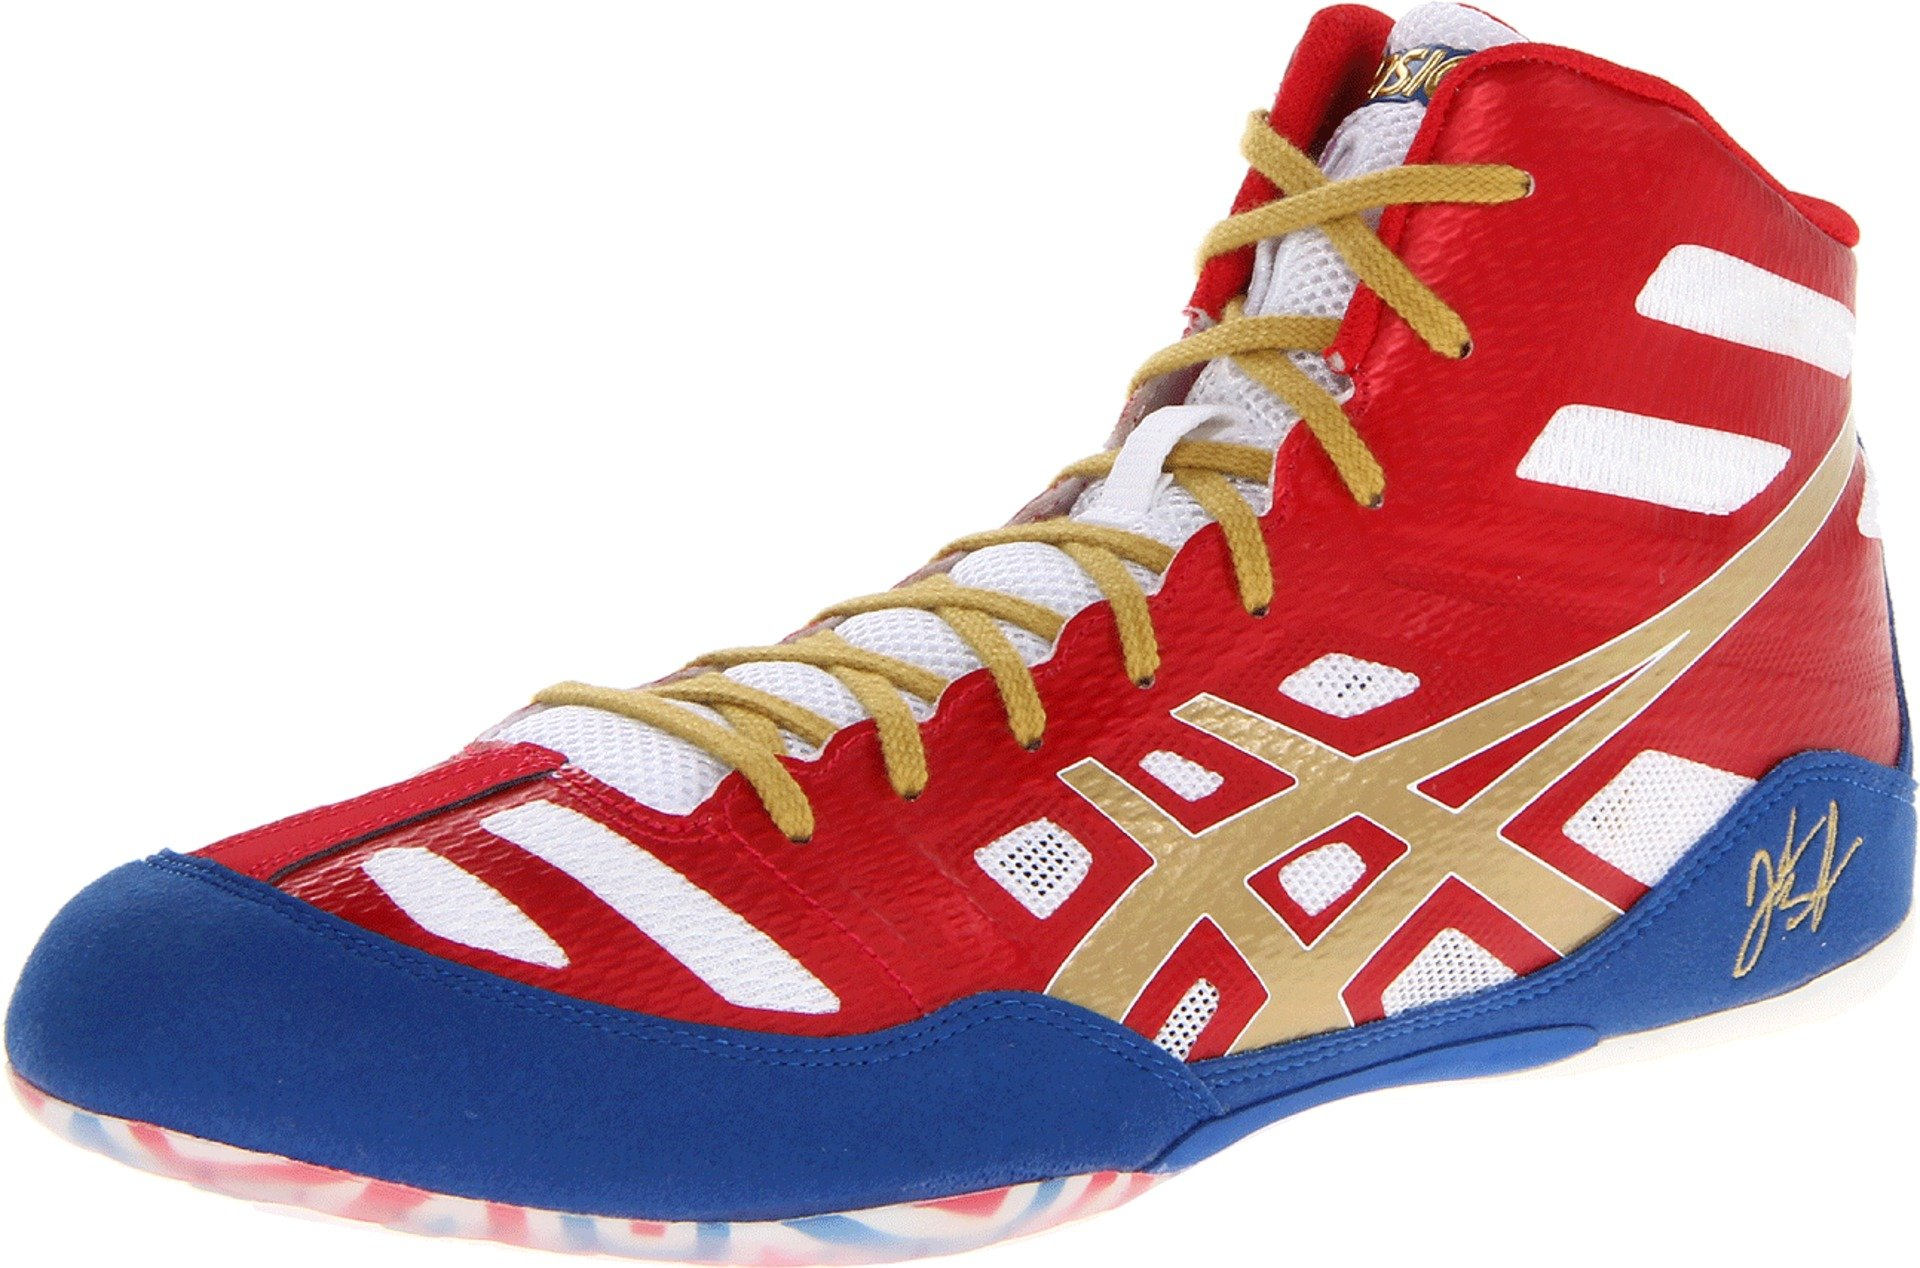 ASICS Men's JB Elite Wrestling Shoe,True Red/Olympic Gold/White,7.5 M US/39 EU